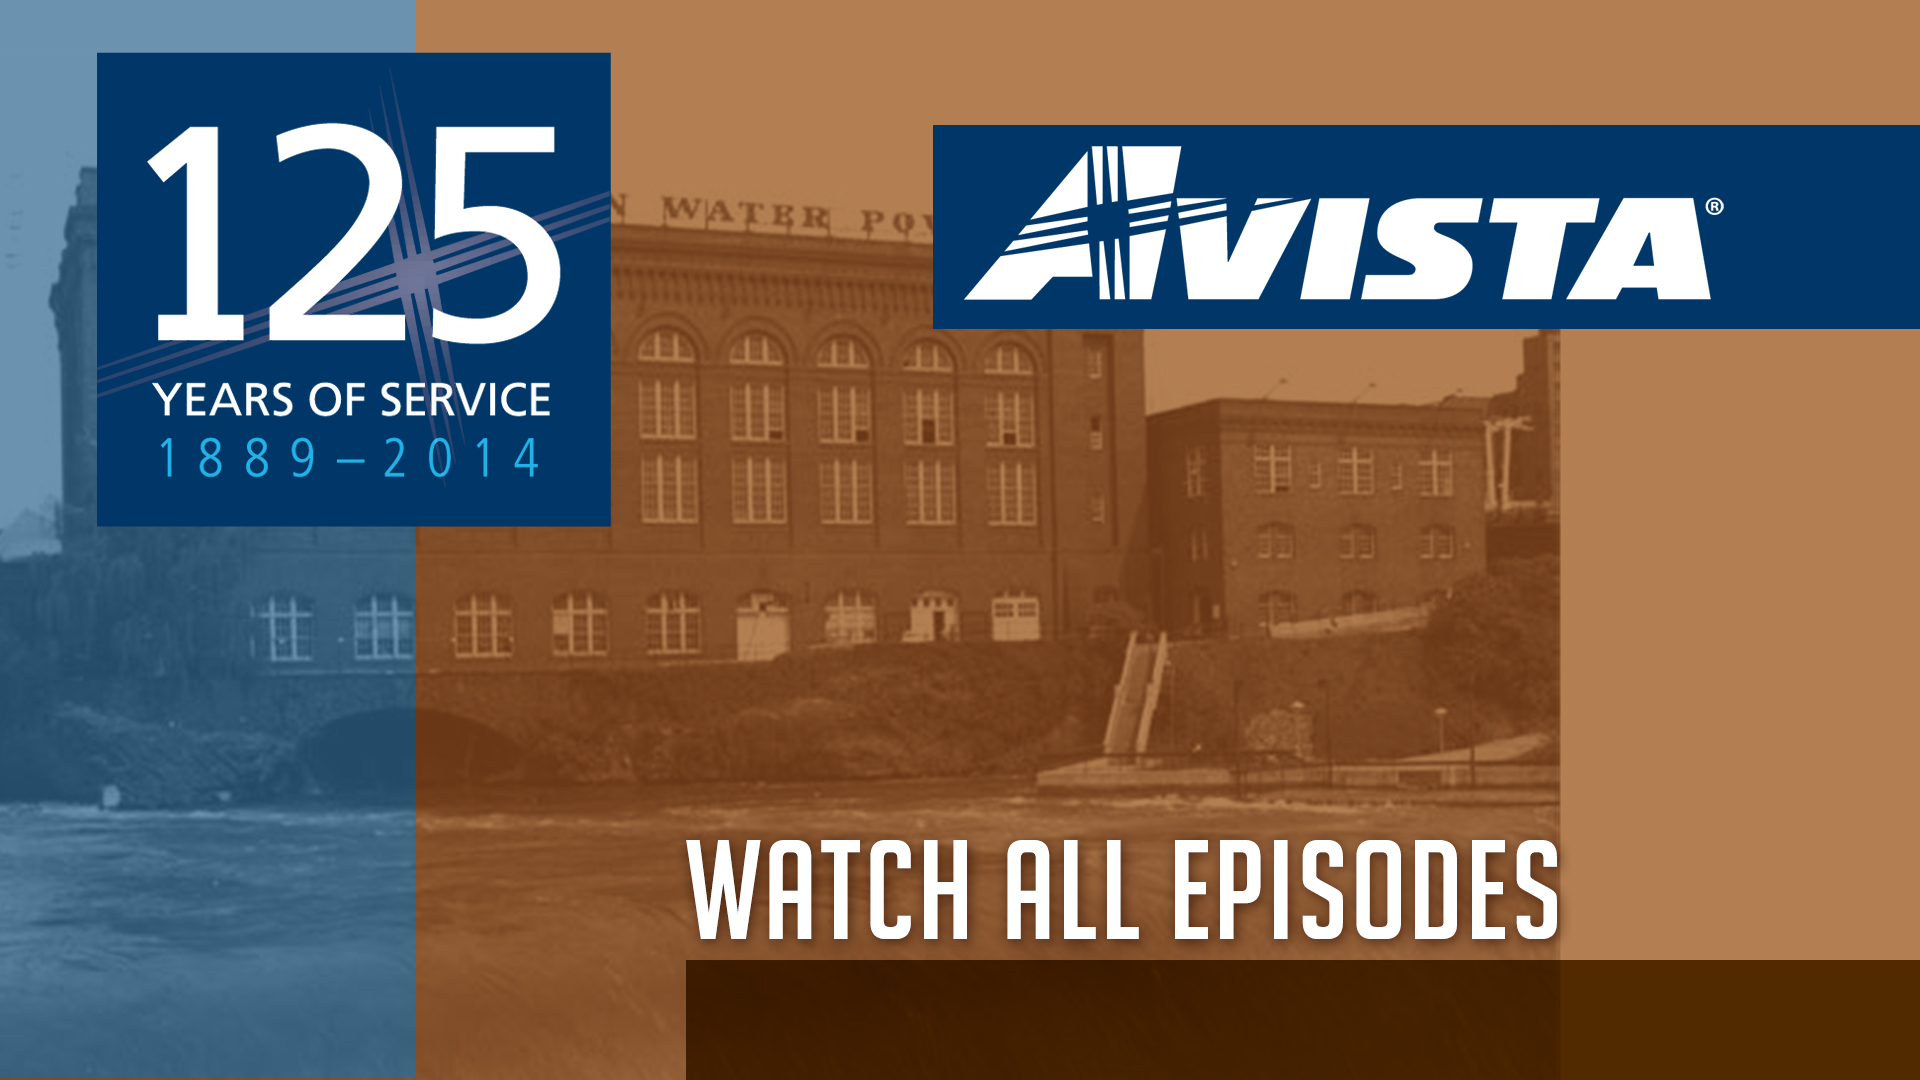 Avista watch all